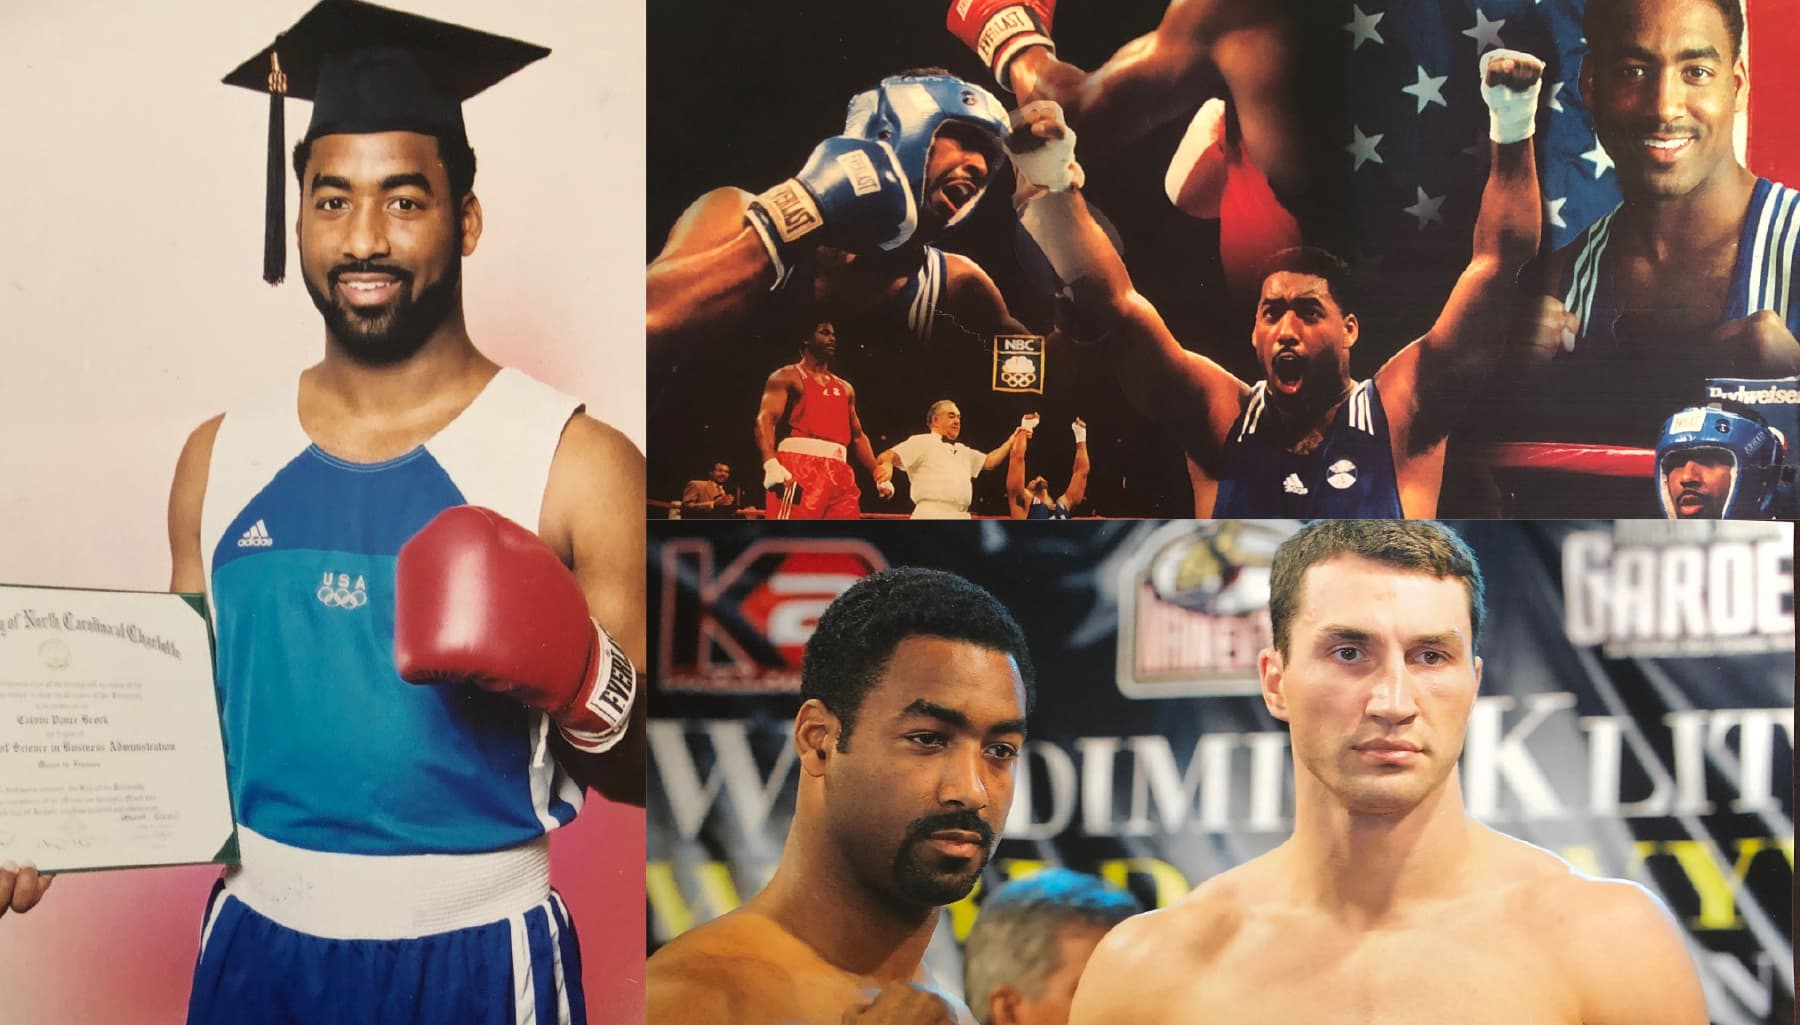 Calvin Brock with UNCC diploma, Olympic boxing montage, photo with Wladimir Klitschko